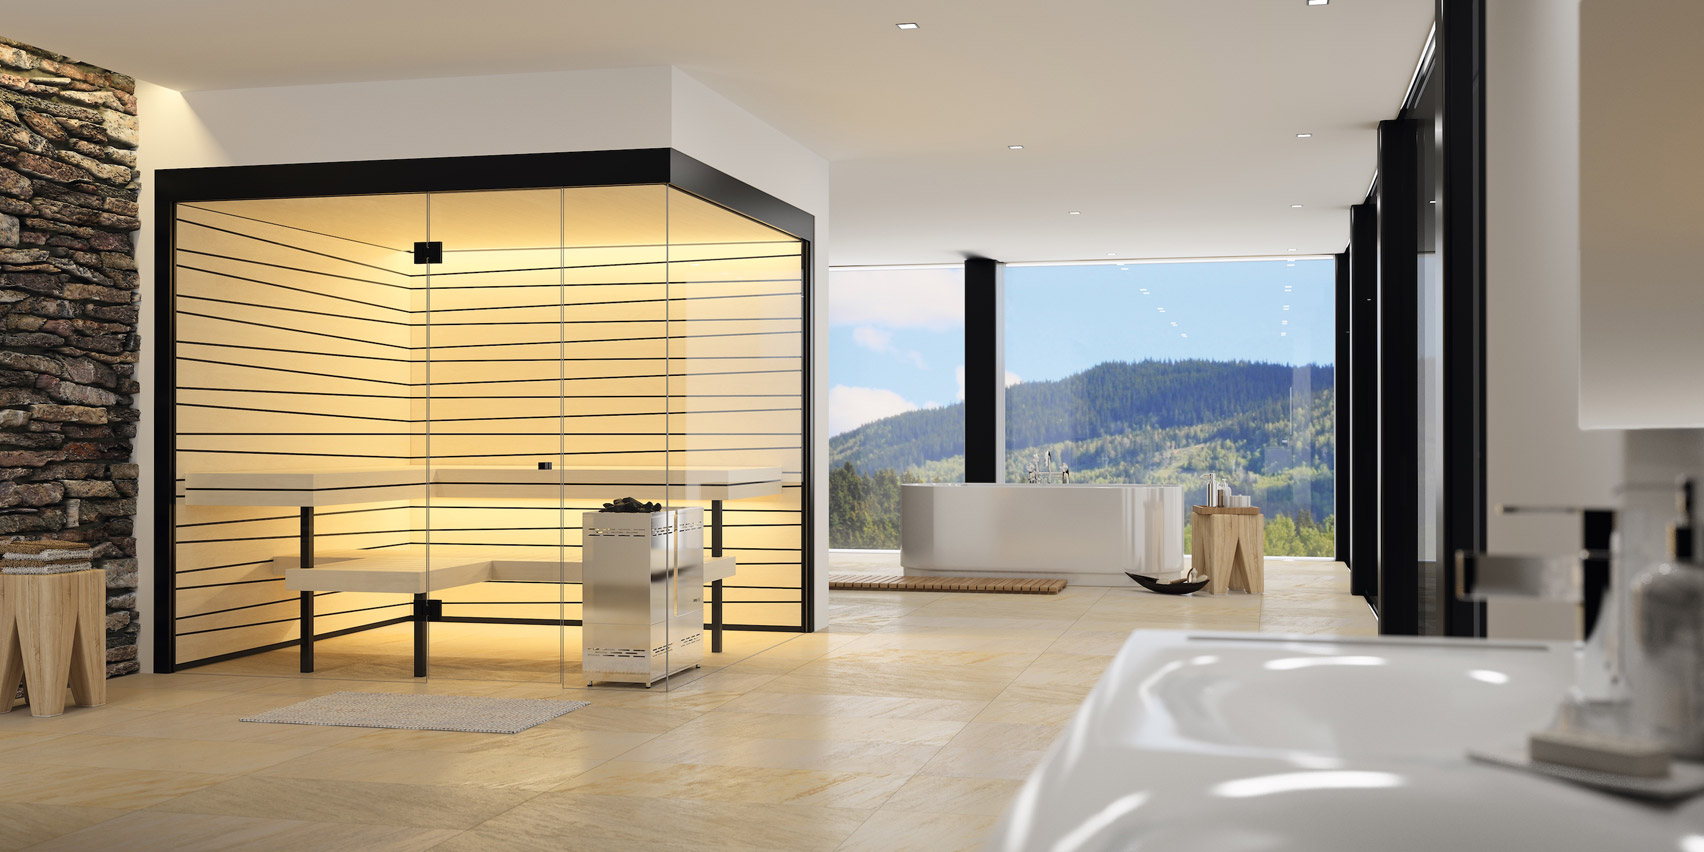 Swiss manufacturer Küng brings the sauna tradition to the living room